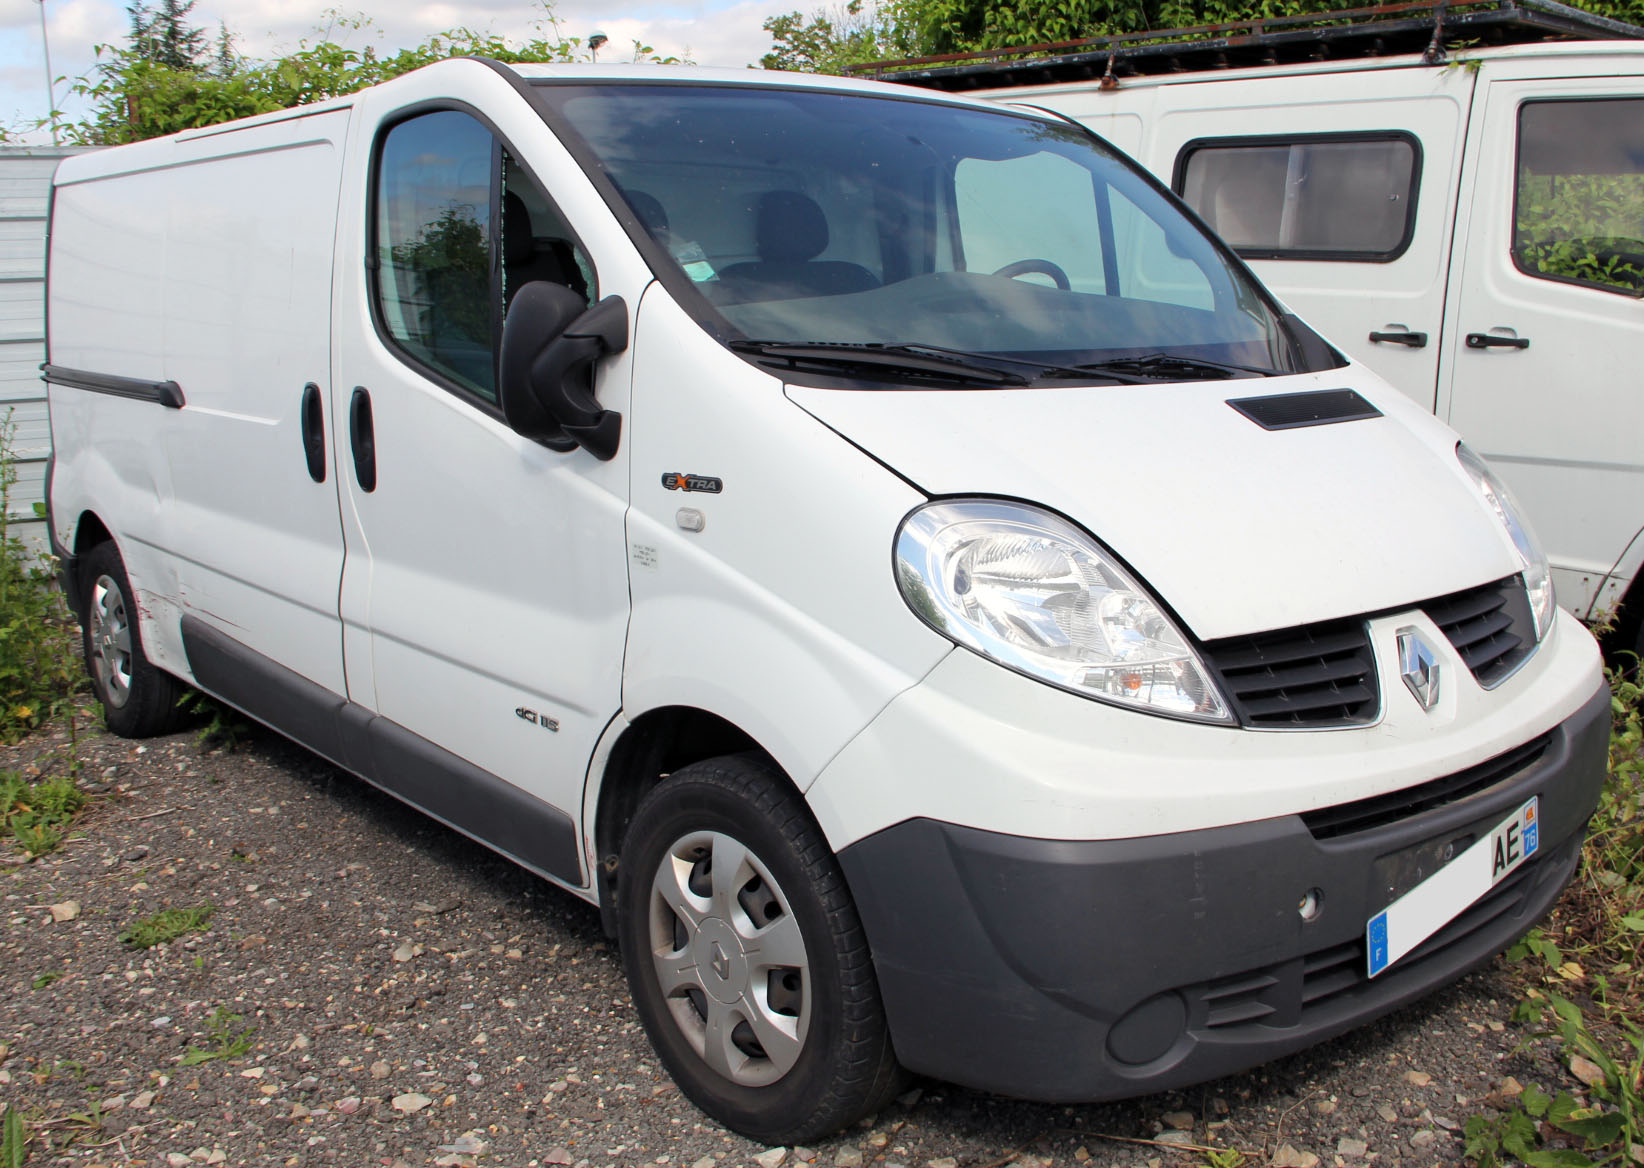 Renault Trafic accidenté RSV/ VEI